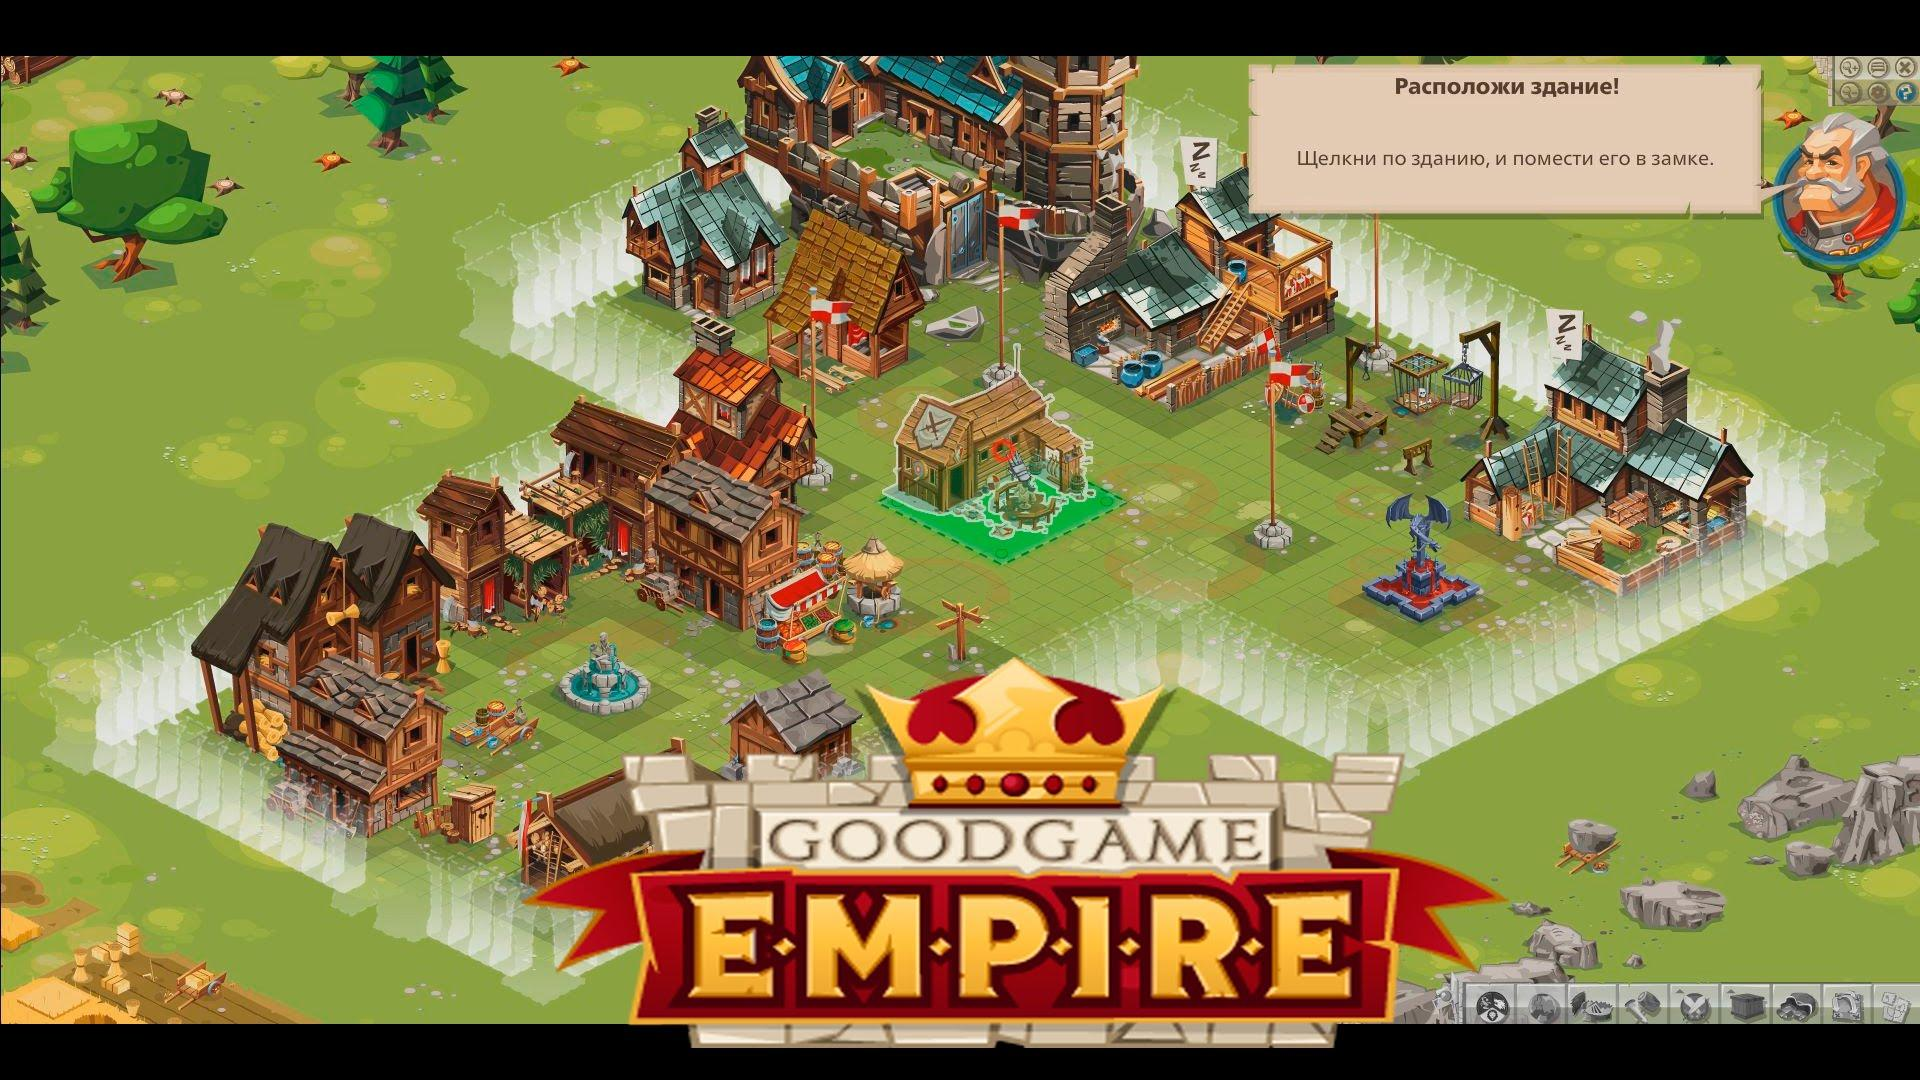 goodgame empires скриншот